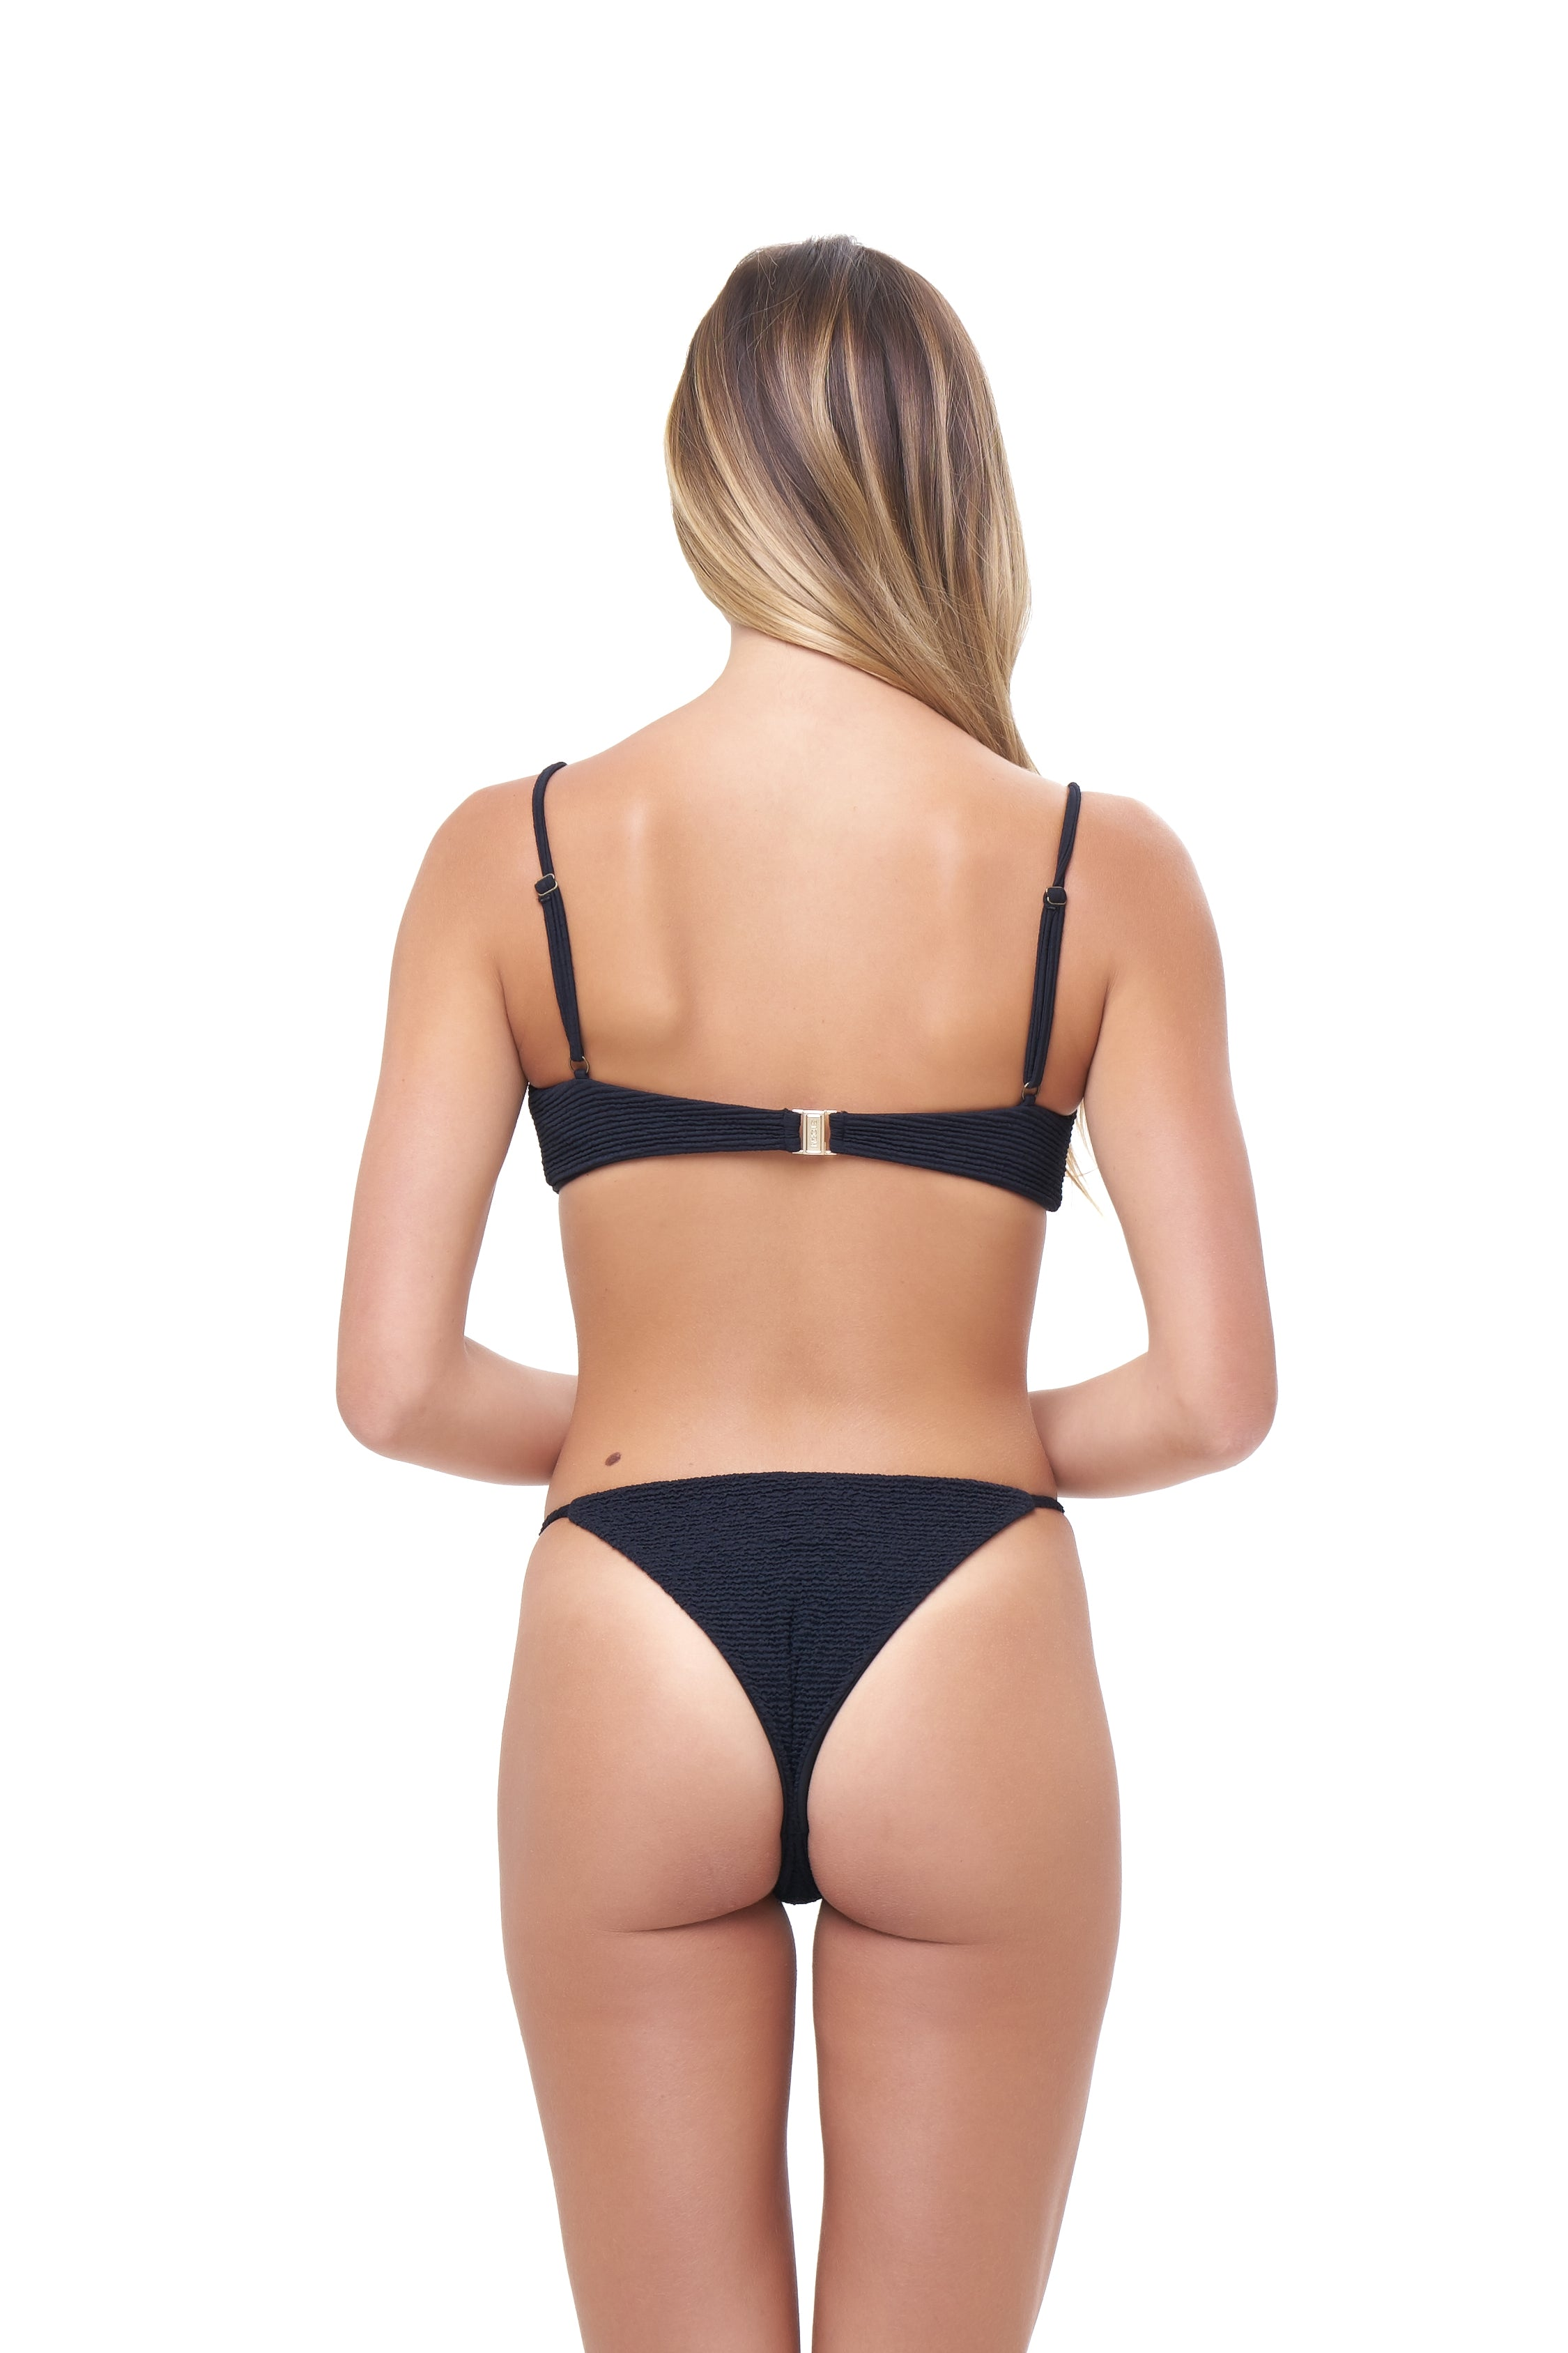 Storm Swimwear - Capri - Tube Single Side Strap Bikini Bottom in Storm Le Nuage Noir